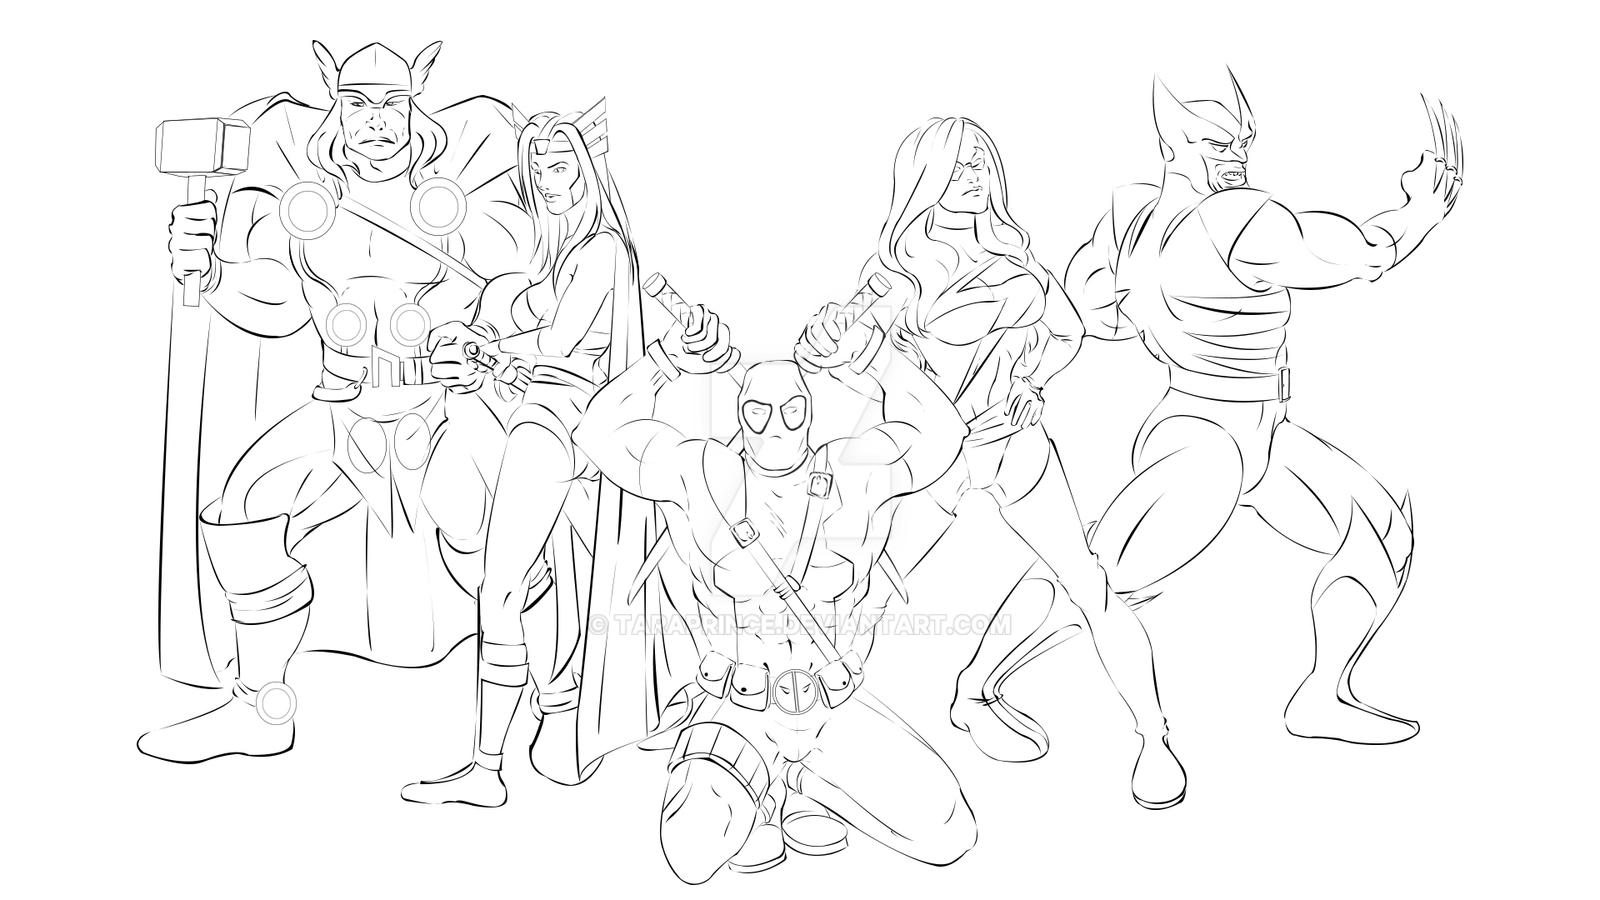 Line Art Marvel : Marvel wallpaper line art by taraprince on deviantart